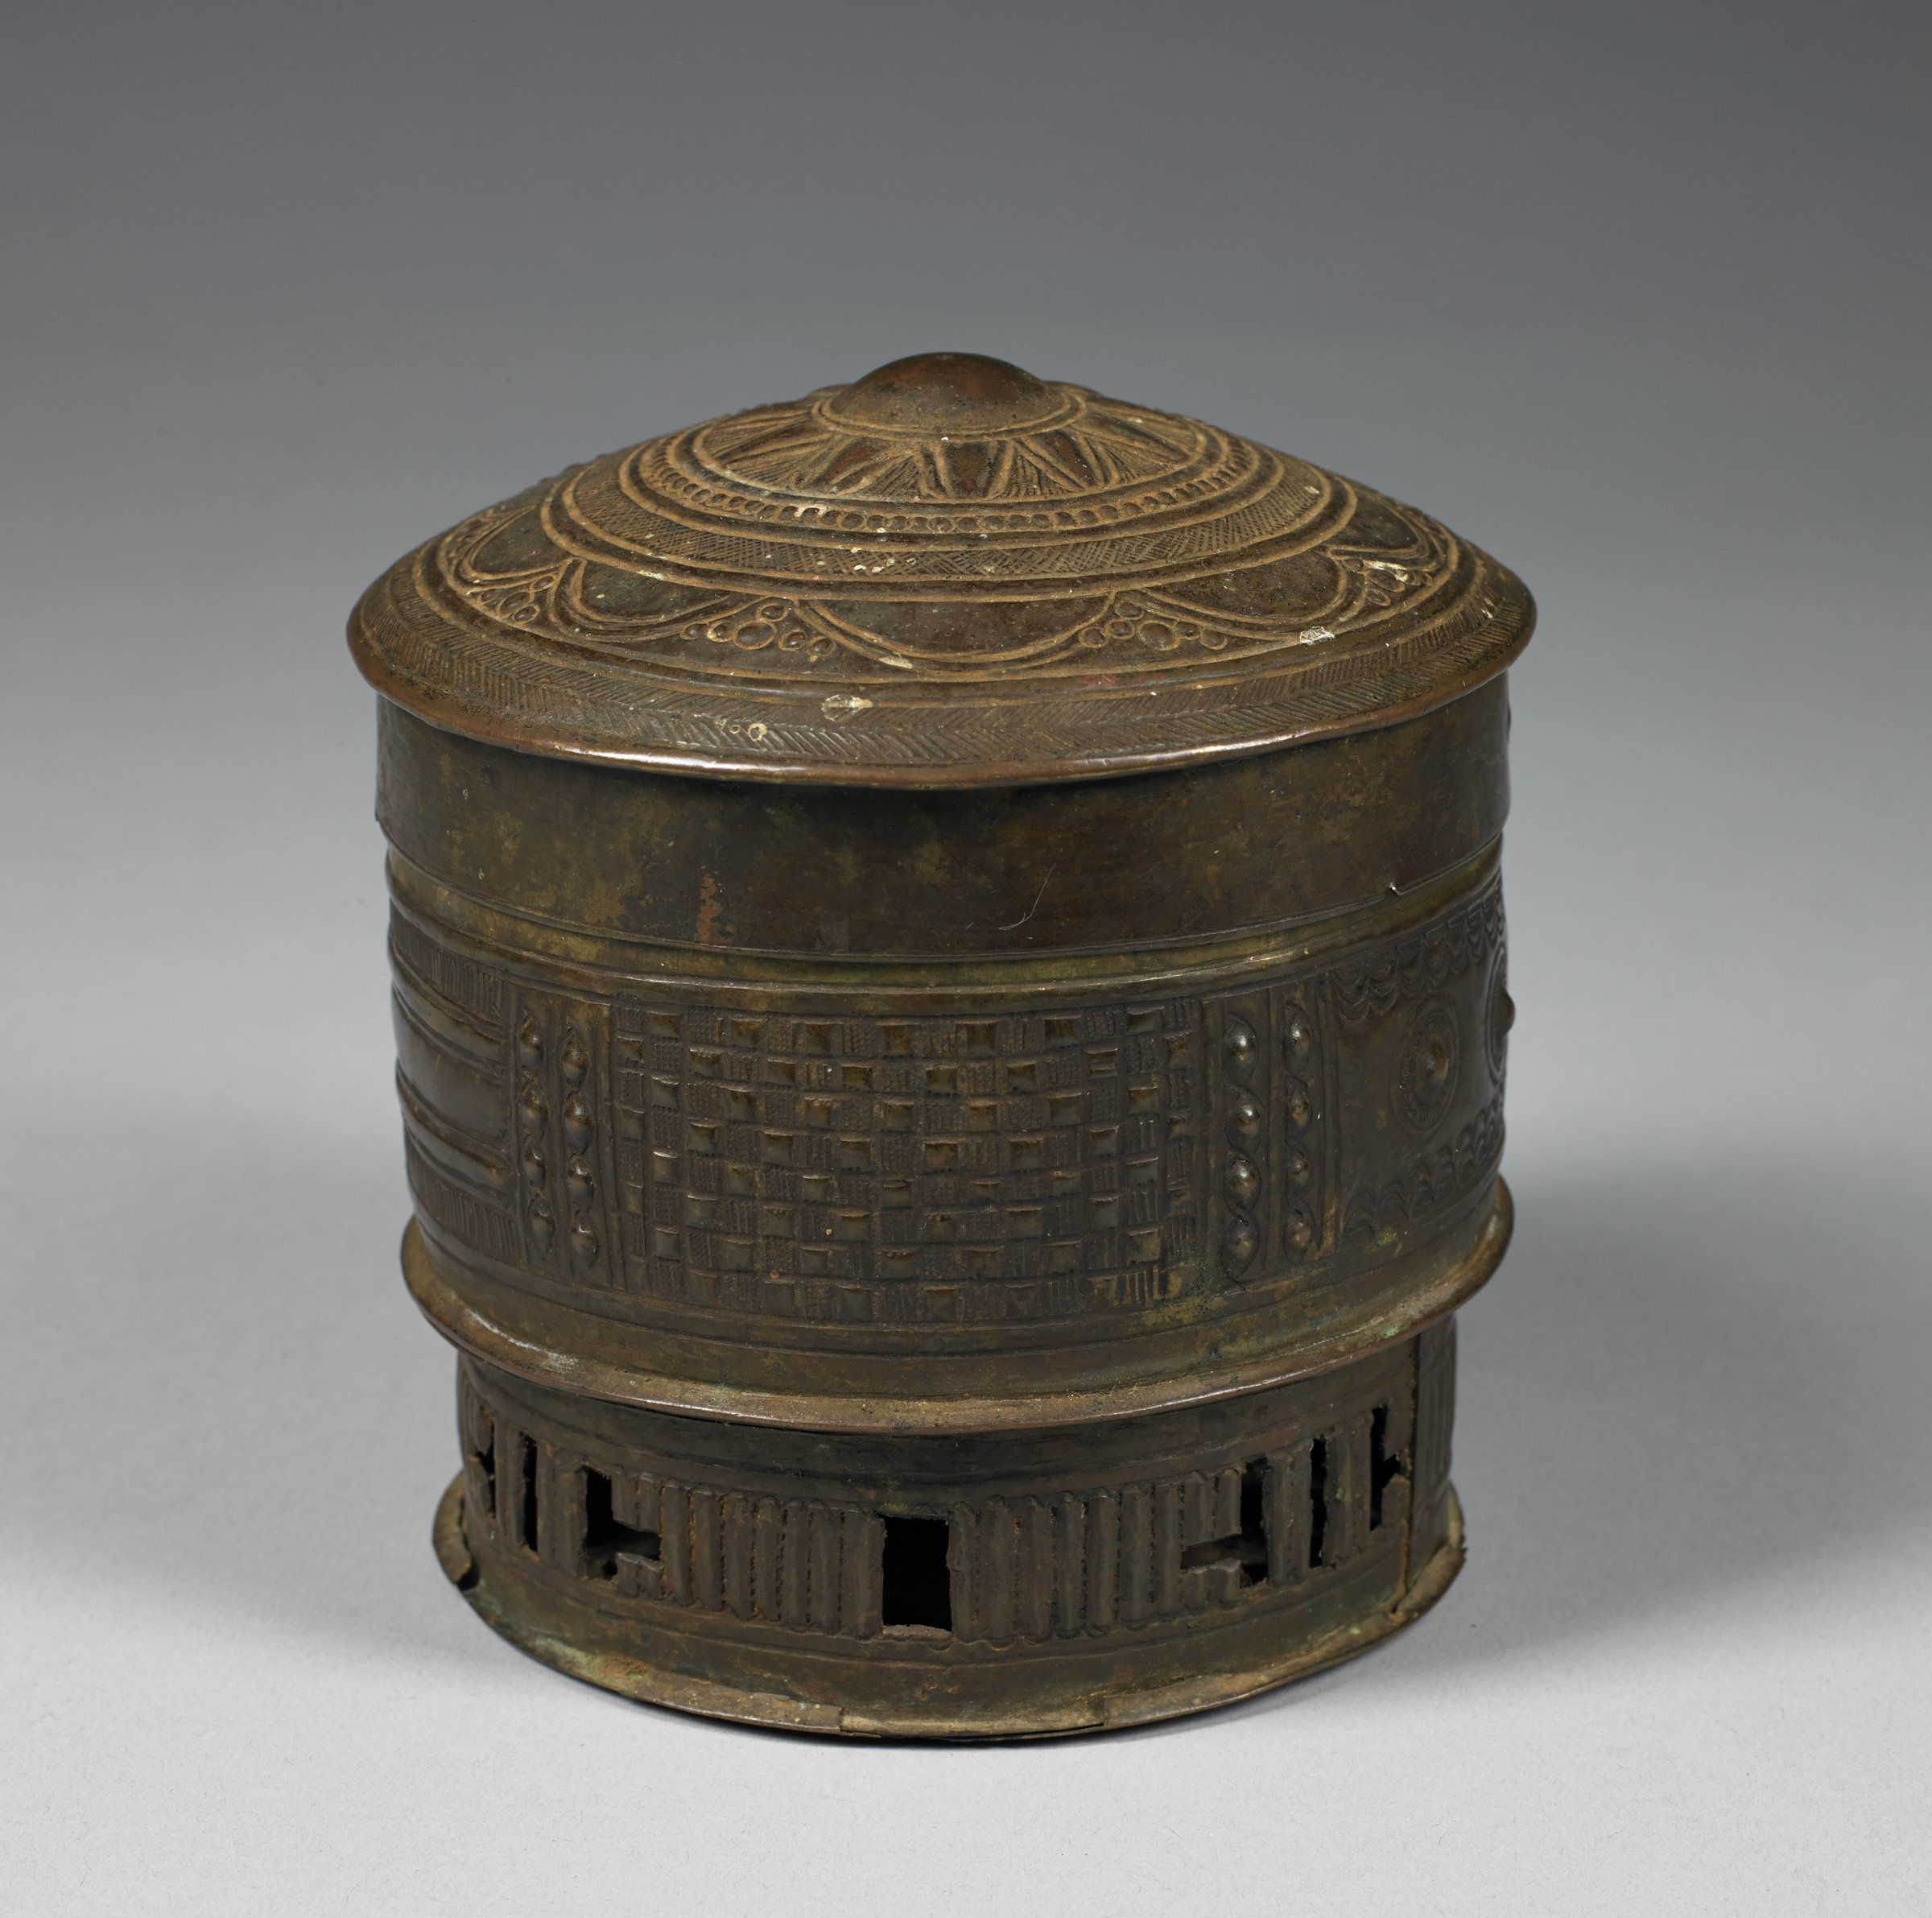 Container with Lid (Forowa), Asante people, Ghana, African, brass